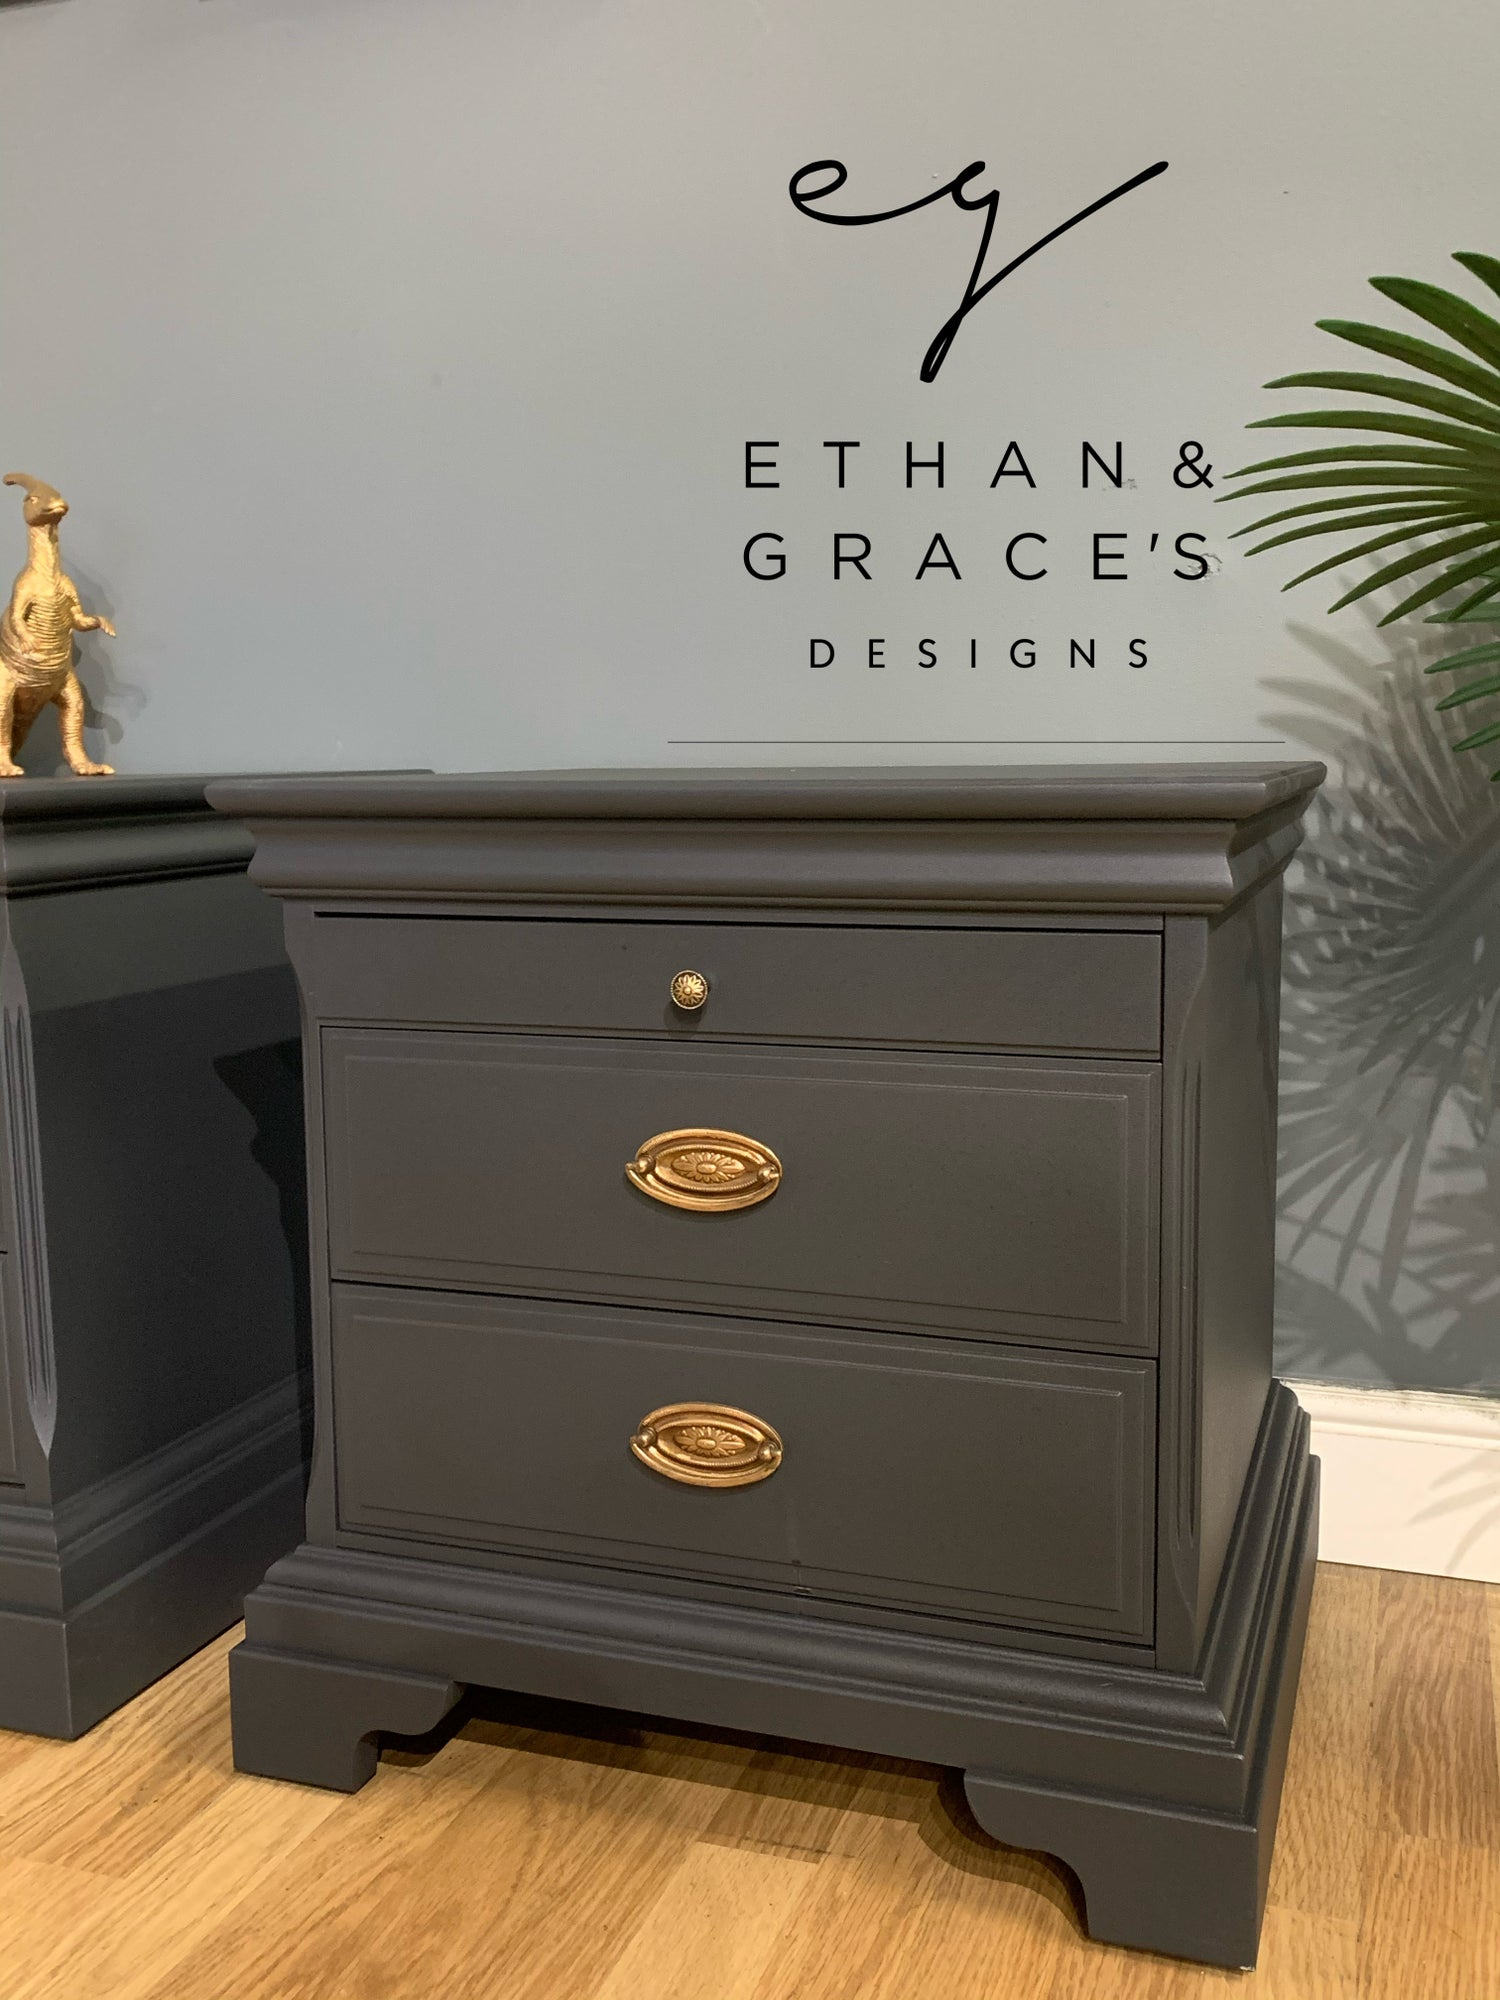 Image of A pair of mahogany Stag bedside tables in dark grey.